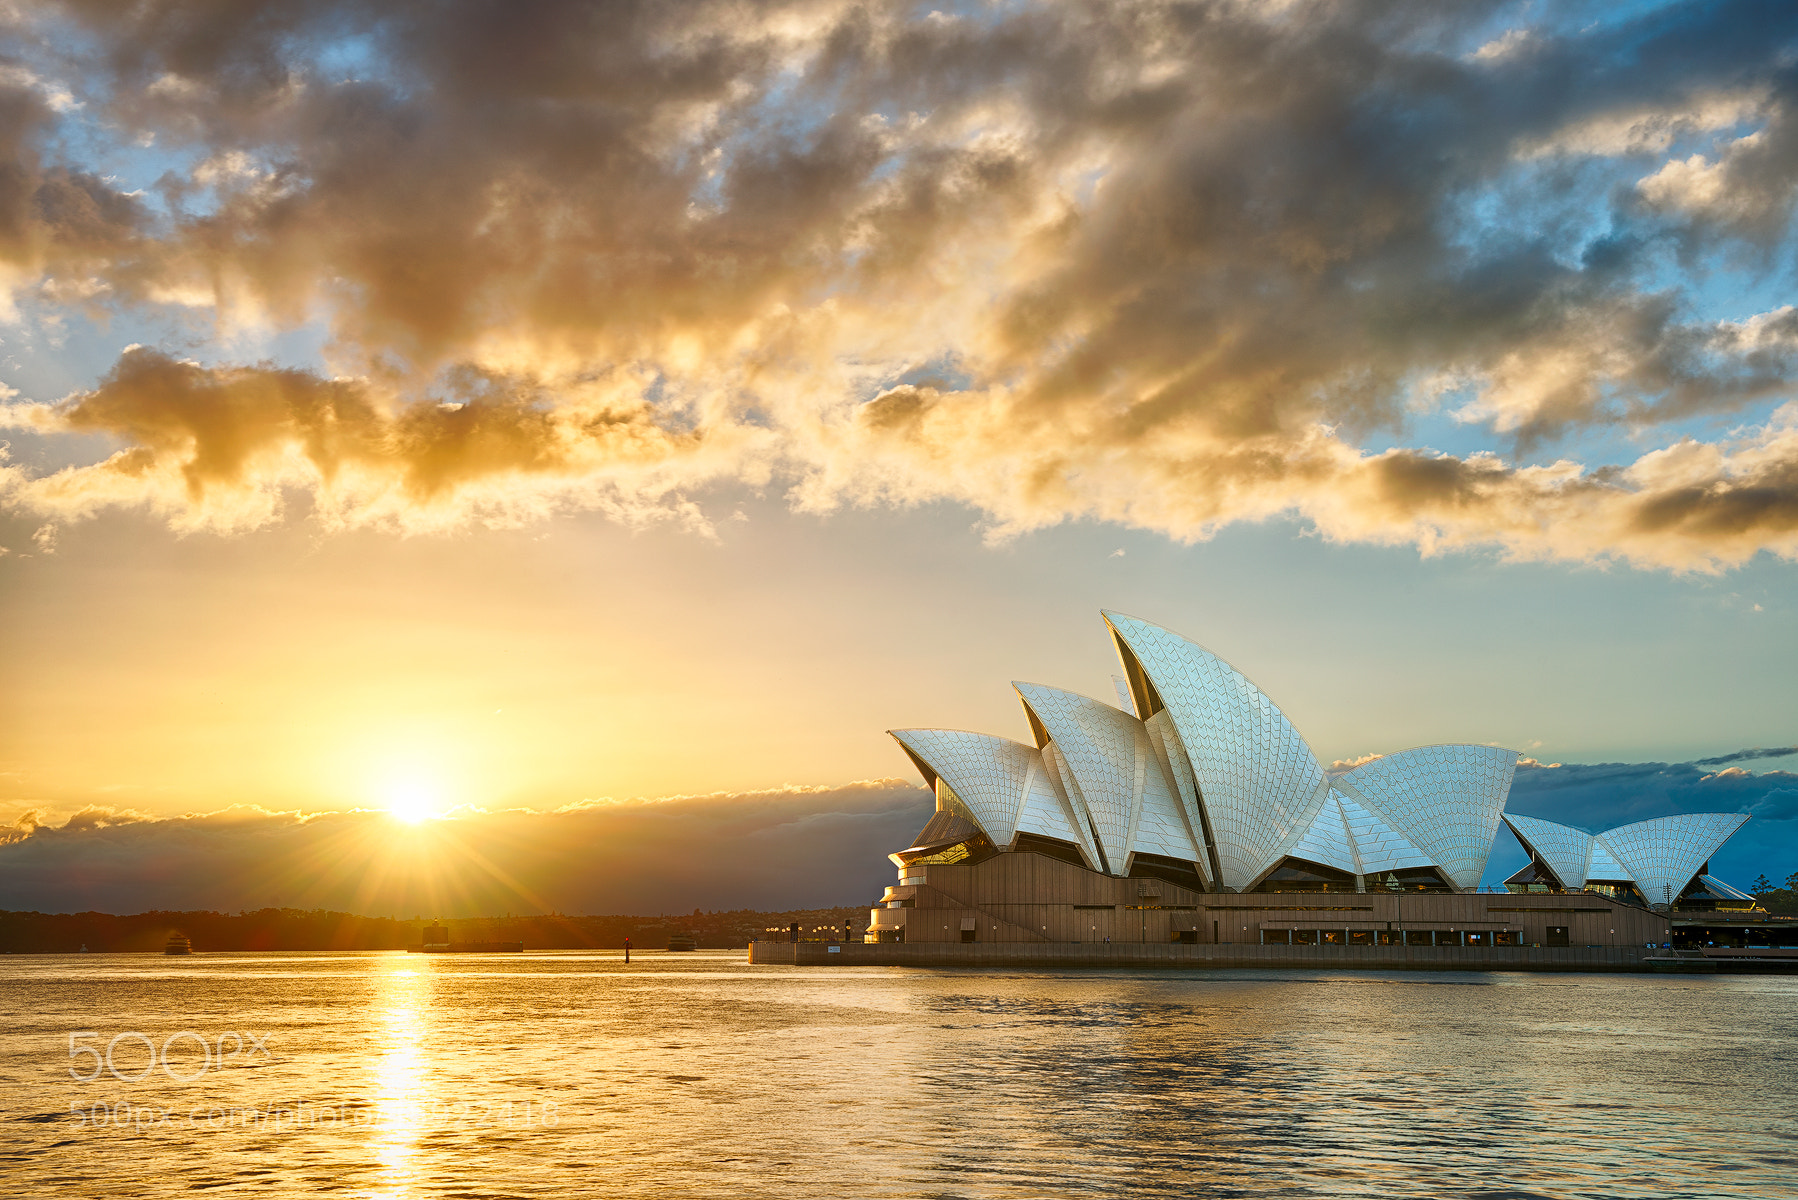 Photograph Golden Sunrise at The Opera House by Danny Xeero on 500px